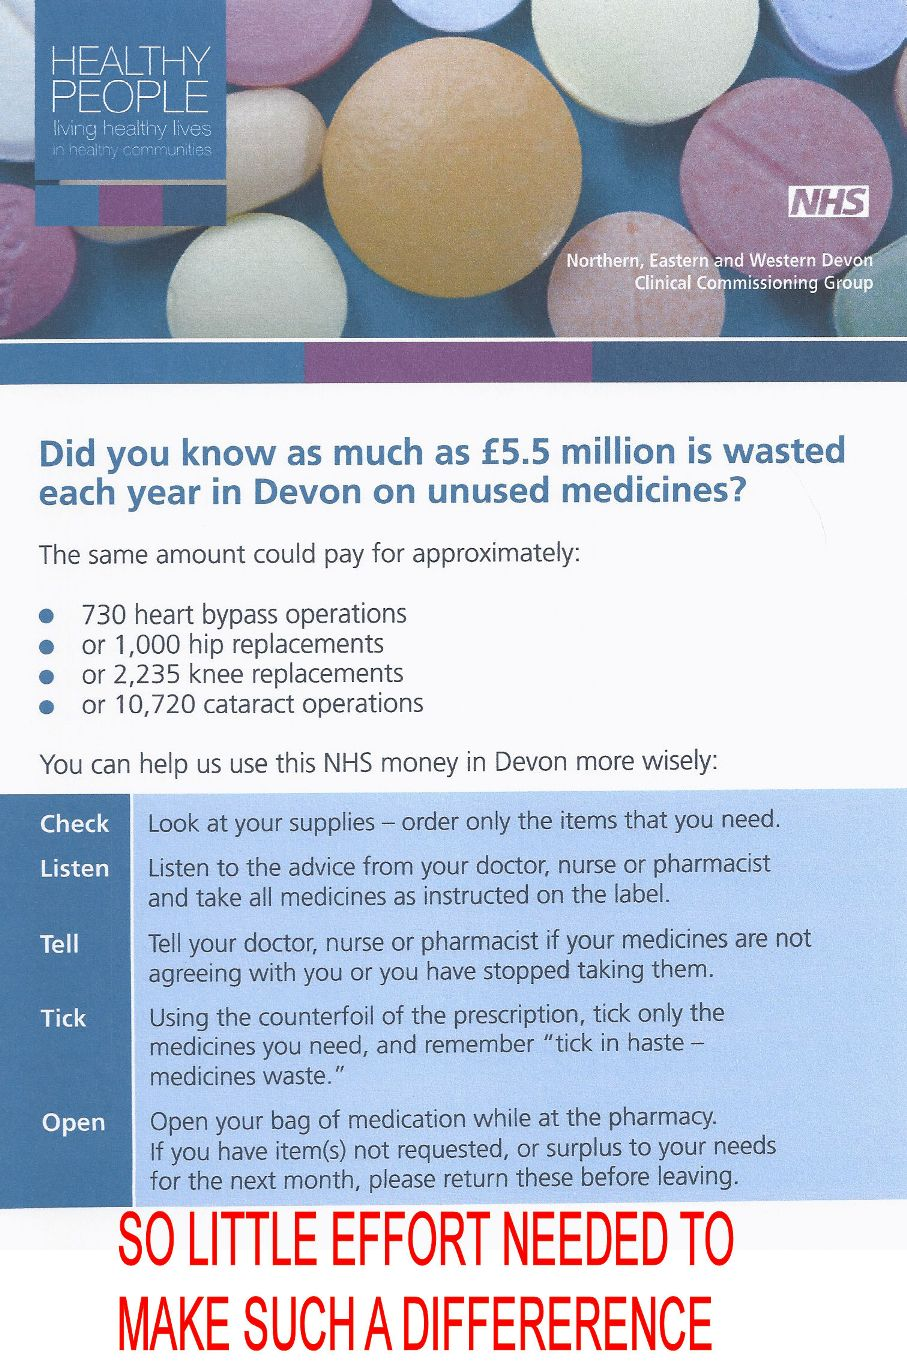 Information poster on waste in the NHS